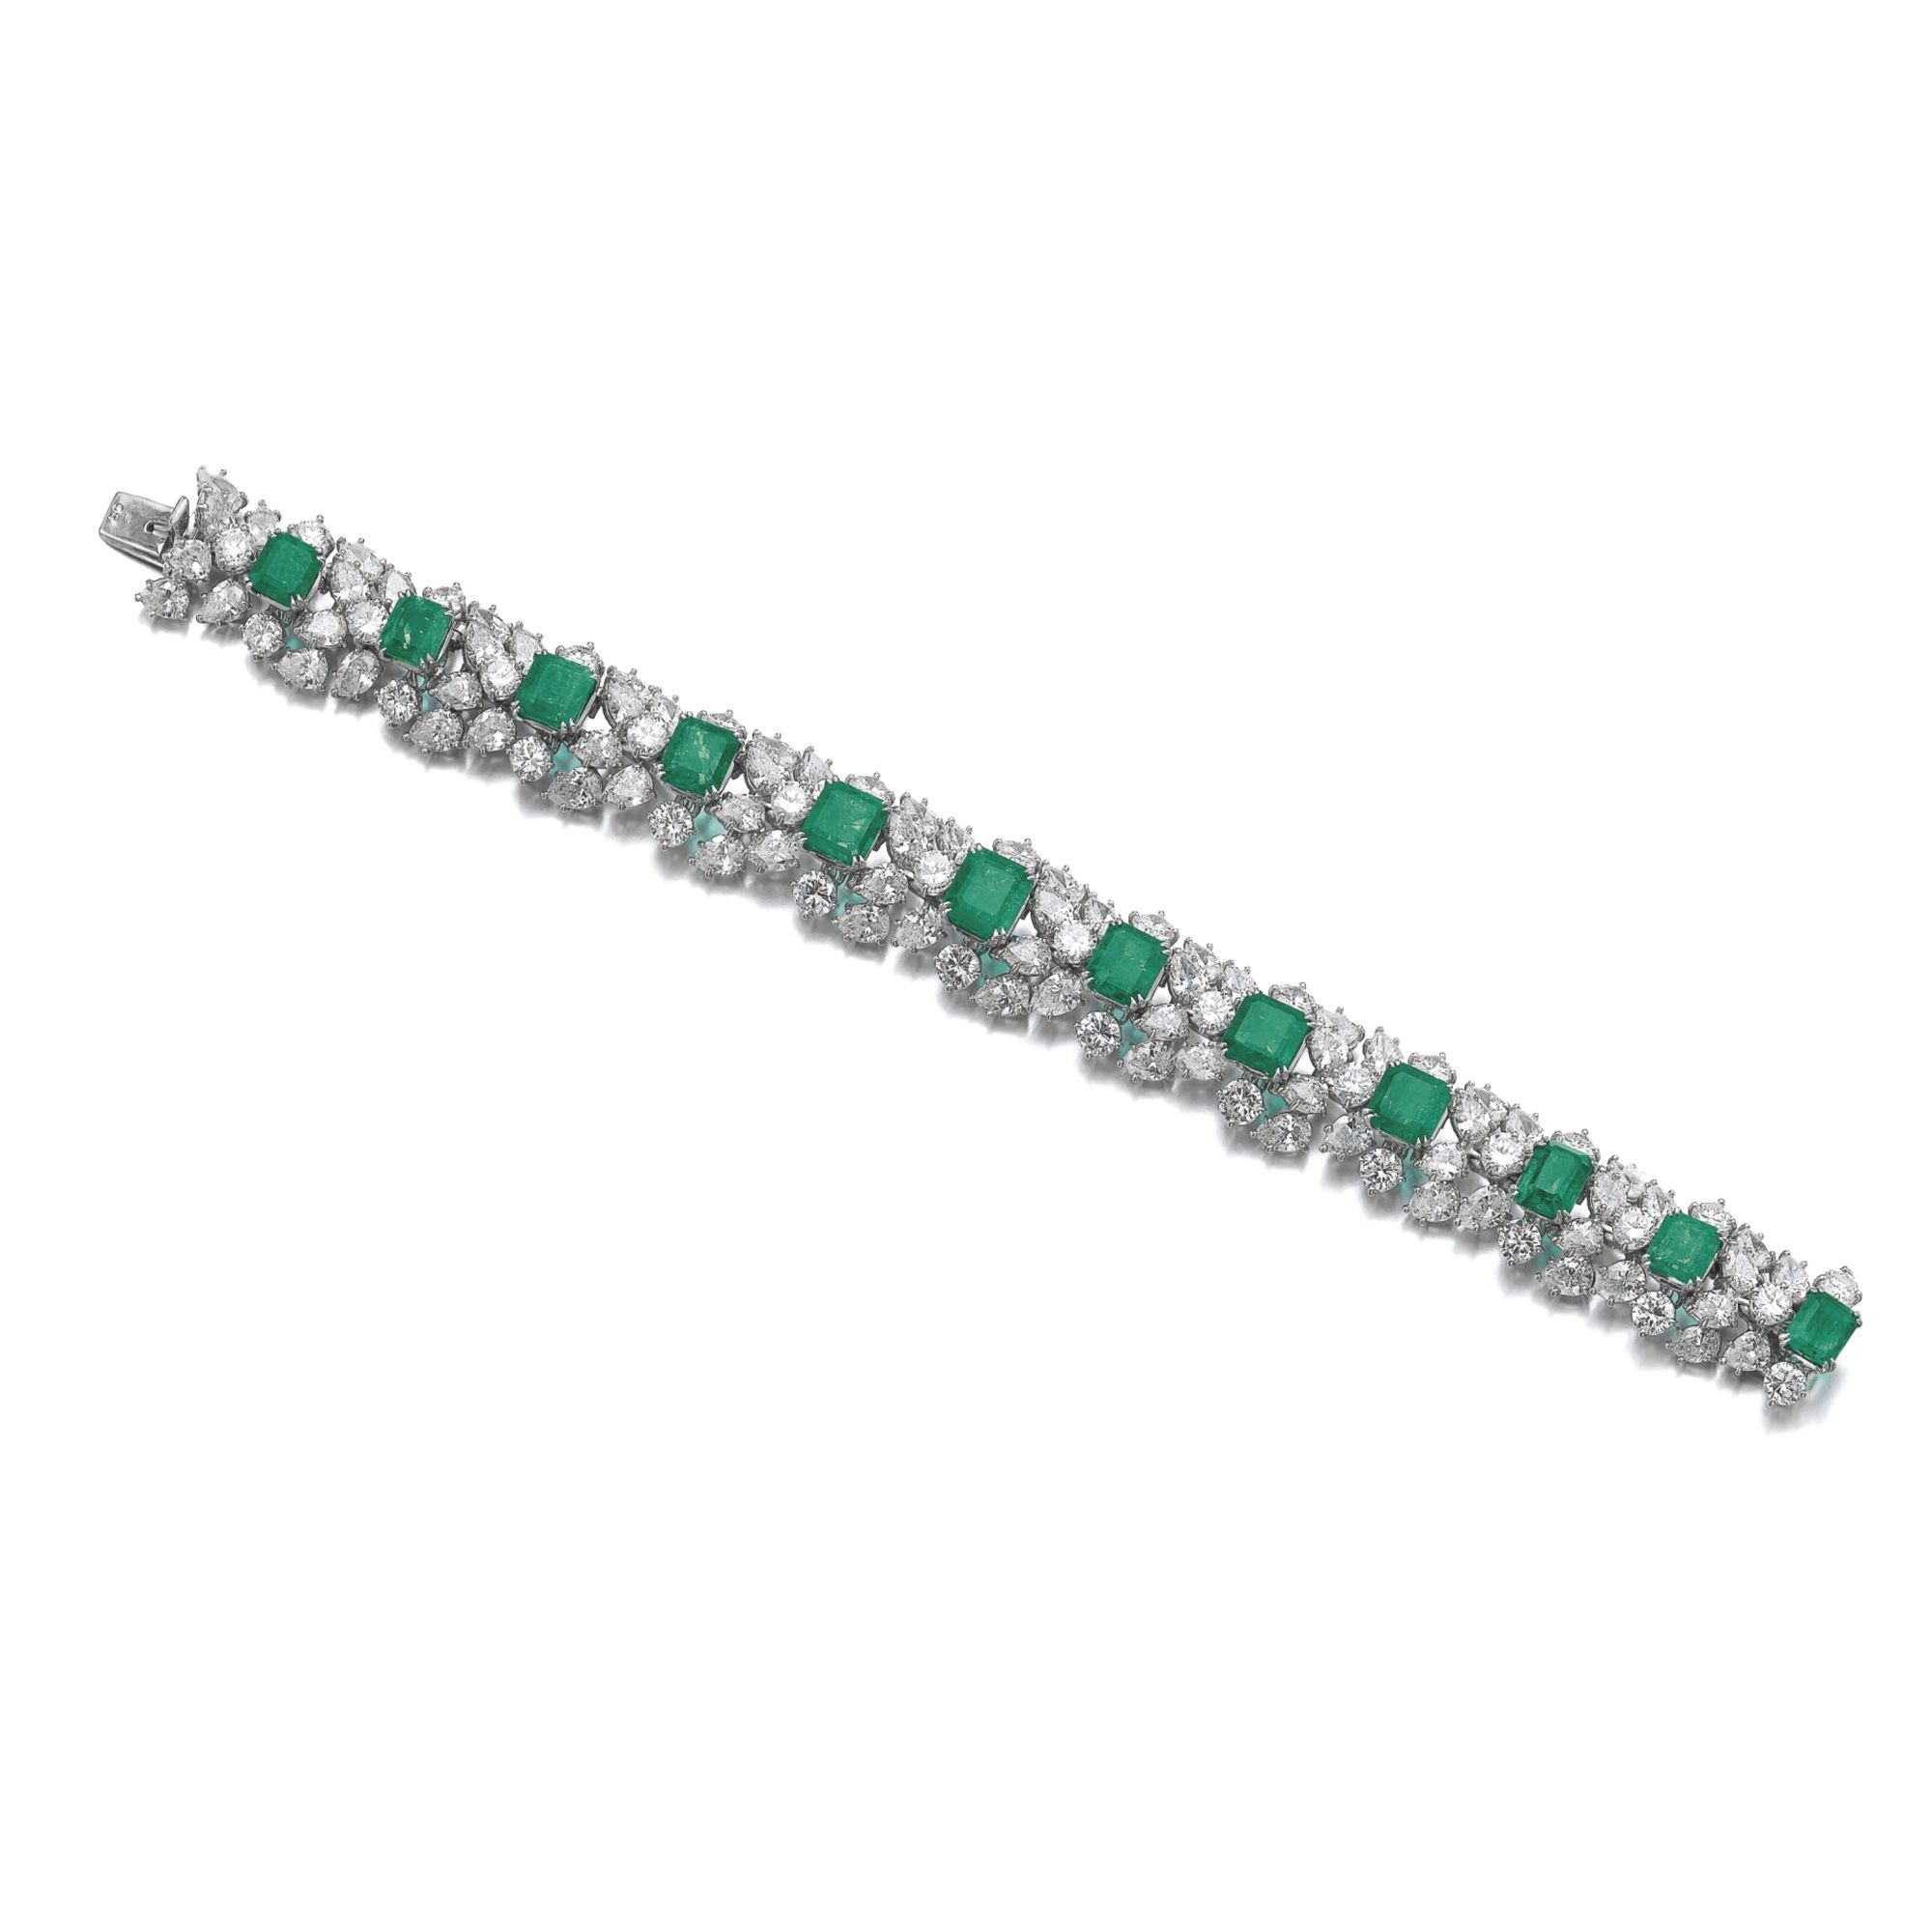 david diamonds f minimalism webb new jewelry carved collections cut brilliant manhattan emerald ring york products